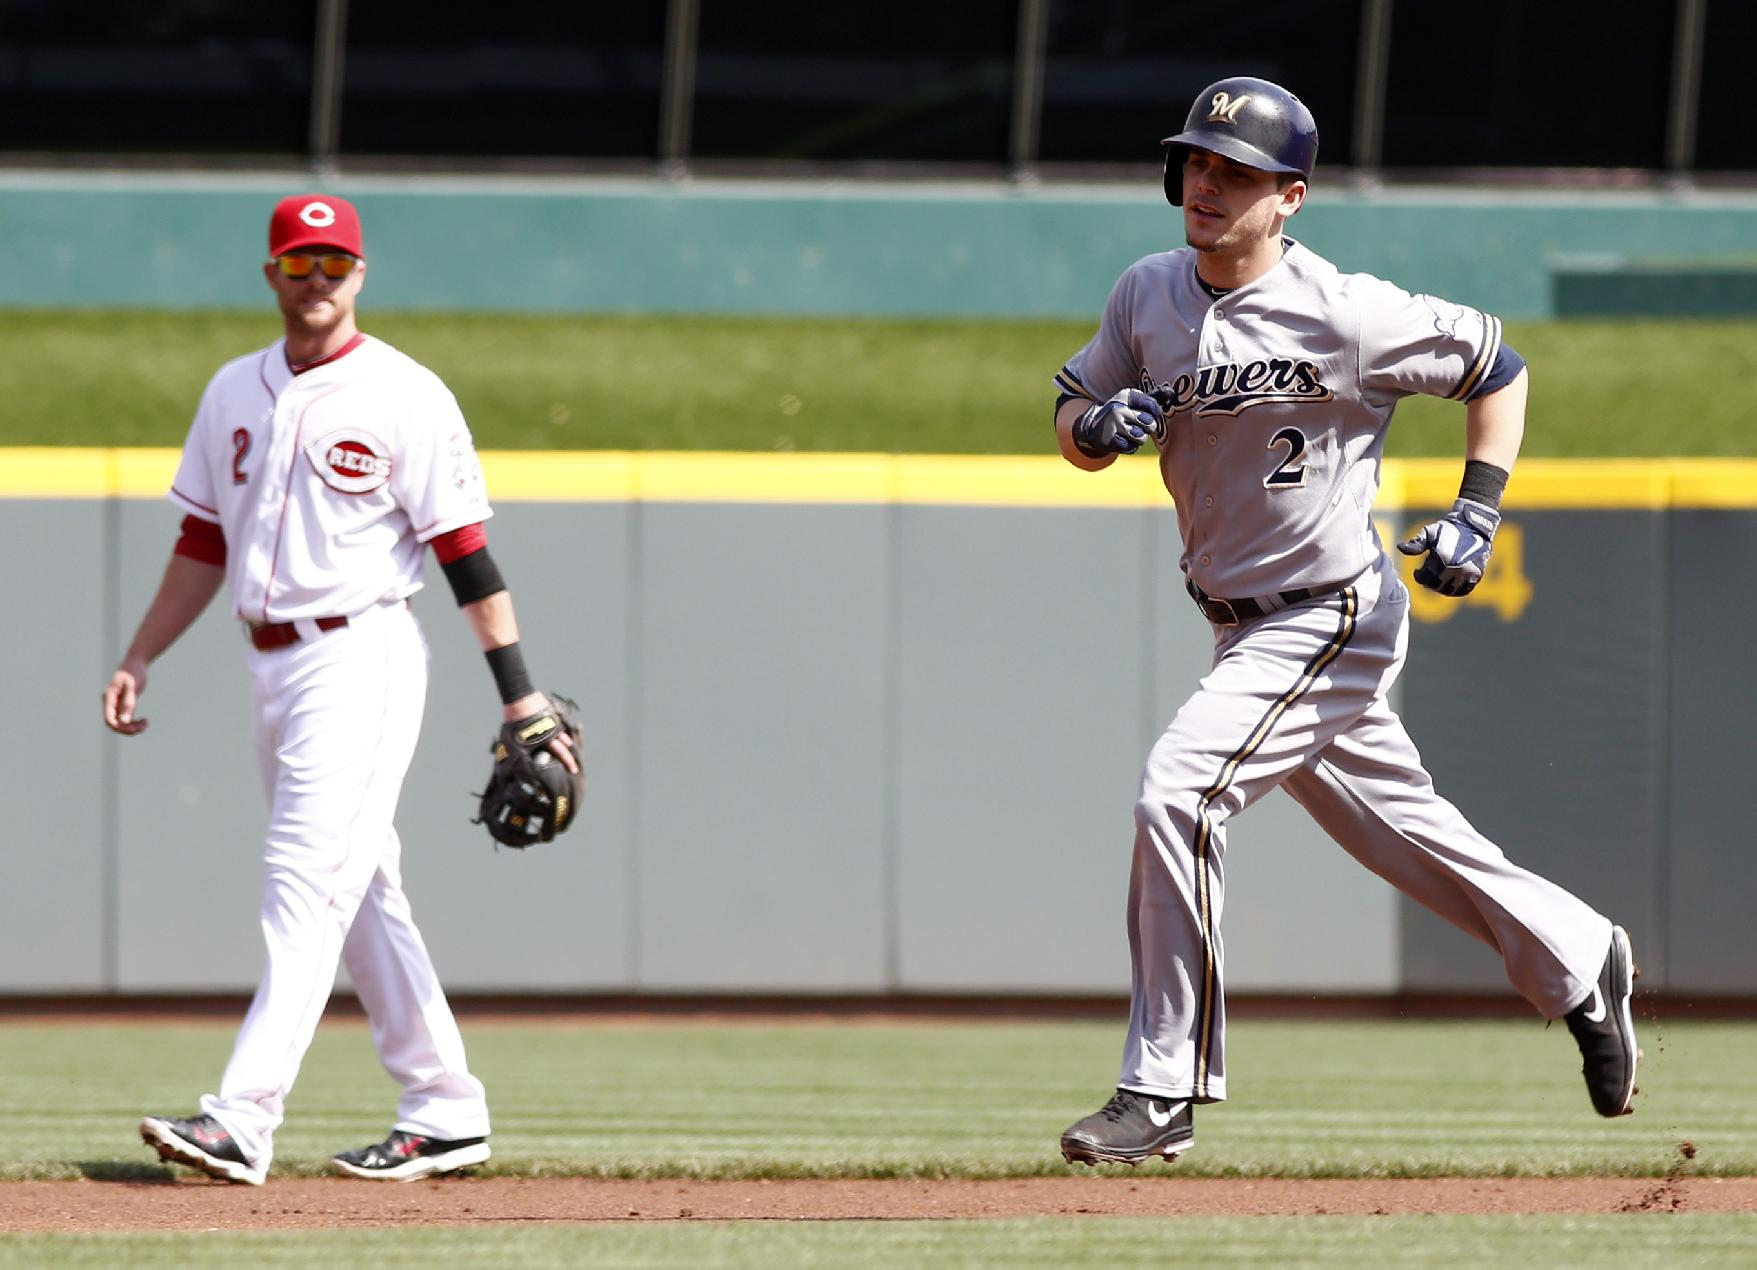 Milwaukee Brewers' Scooter Gennett, right, rounds the bases after hitting a solo home run off Cincinnati Reds starting pitcher Alfredo Simon during the first inning of a baseball game, Sunday, May 4, 2014, in Cincinnati. Reds shortstop Zack Cozart watches at left